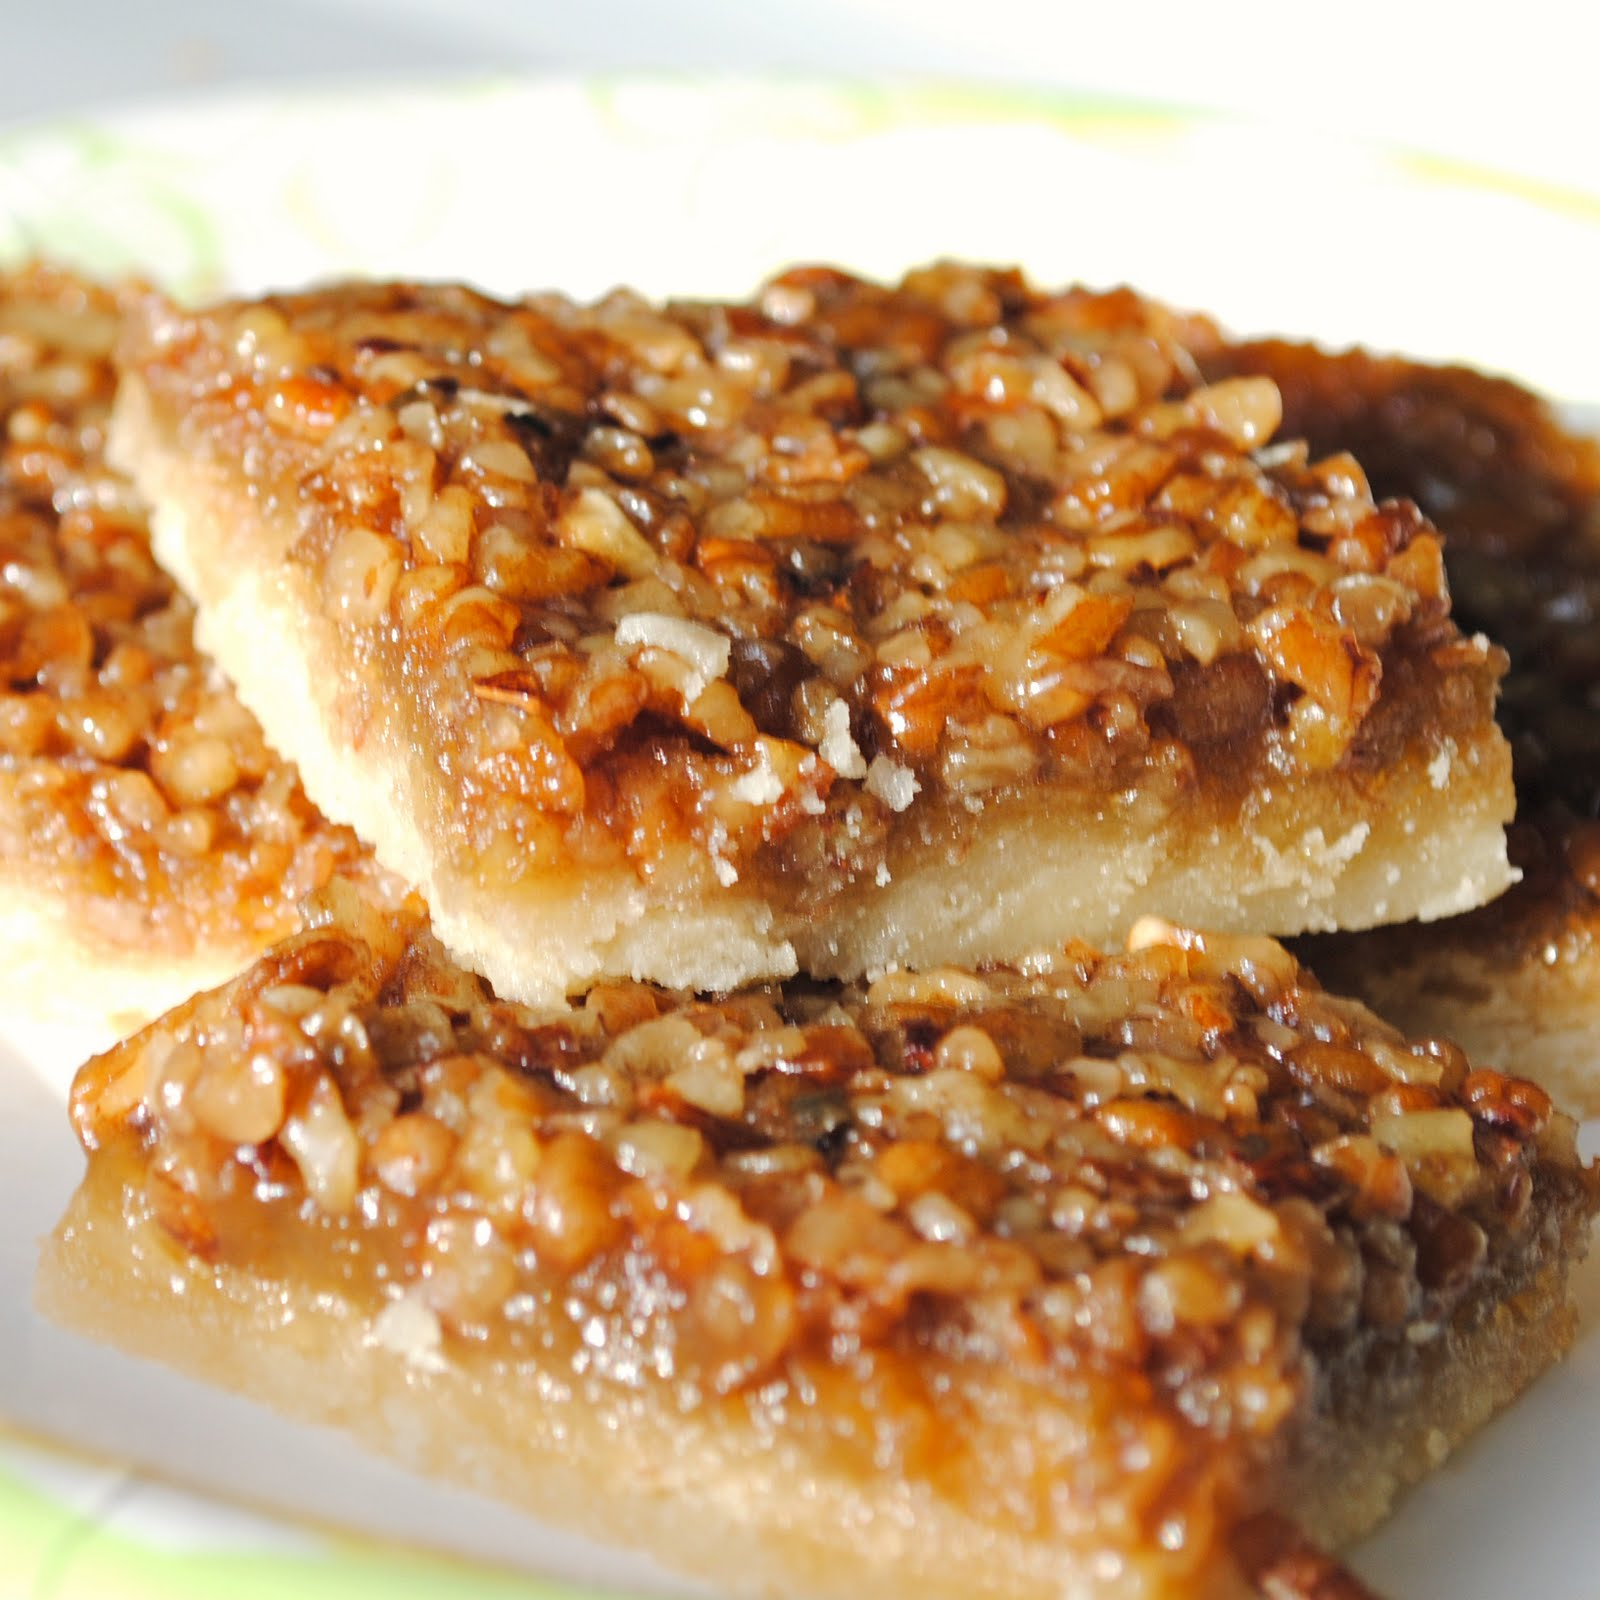 Homemade By Holman: Pecan Pie Bars